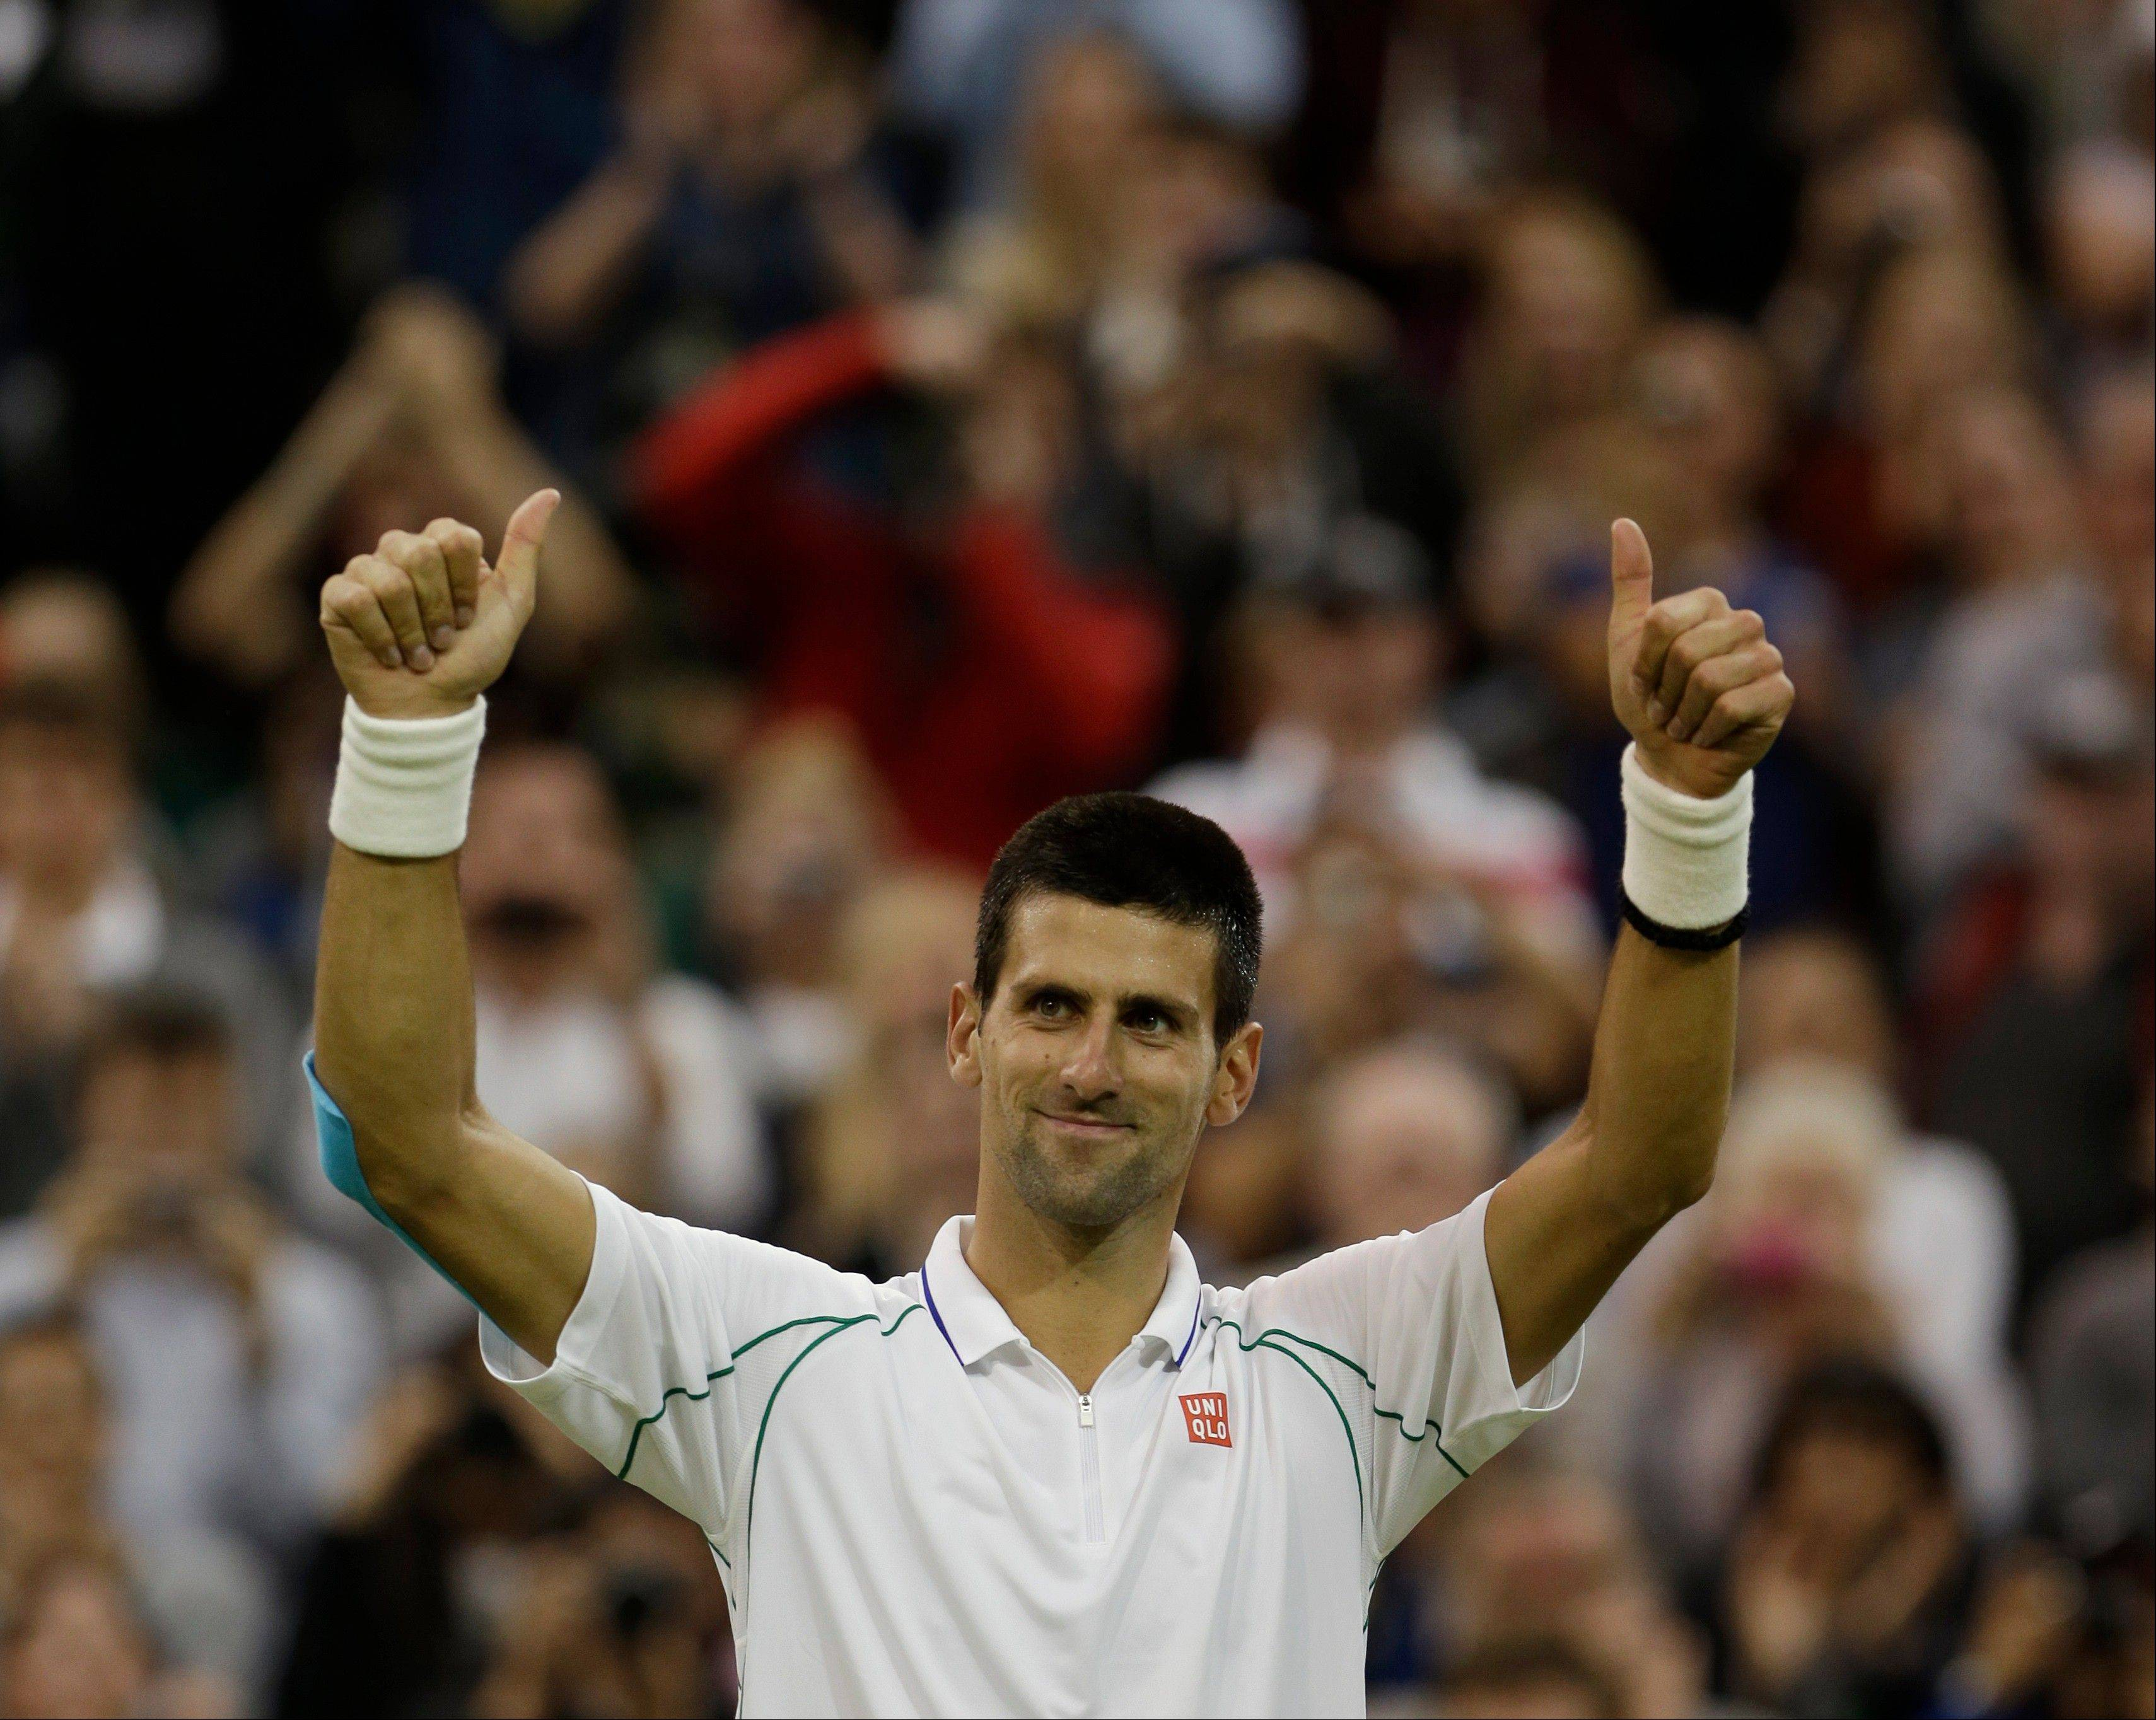 Novak Djokovic of Serbia reacts after defeating Viktor Troicki of Serbia during a fourth round singles match Monday at the All England Lawn Tennis Championships at Wimbledon, England.